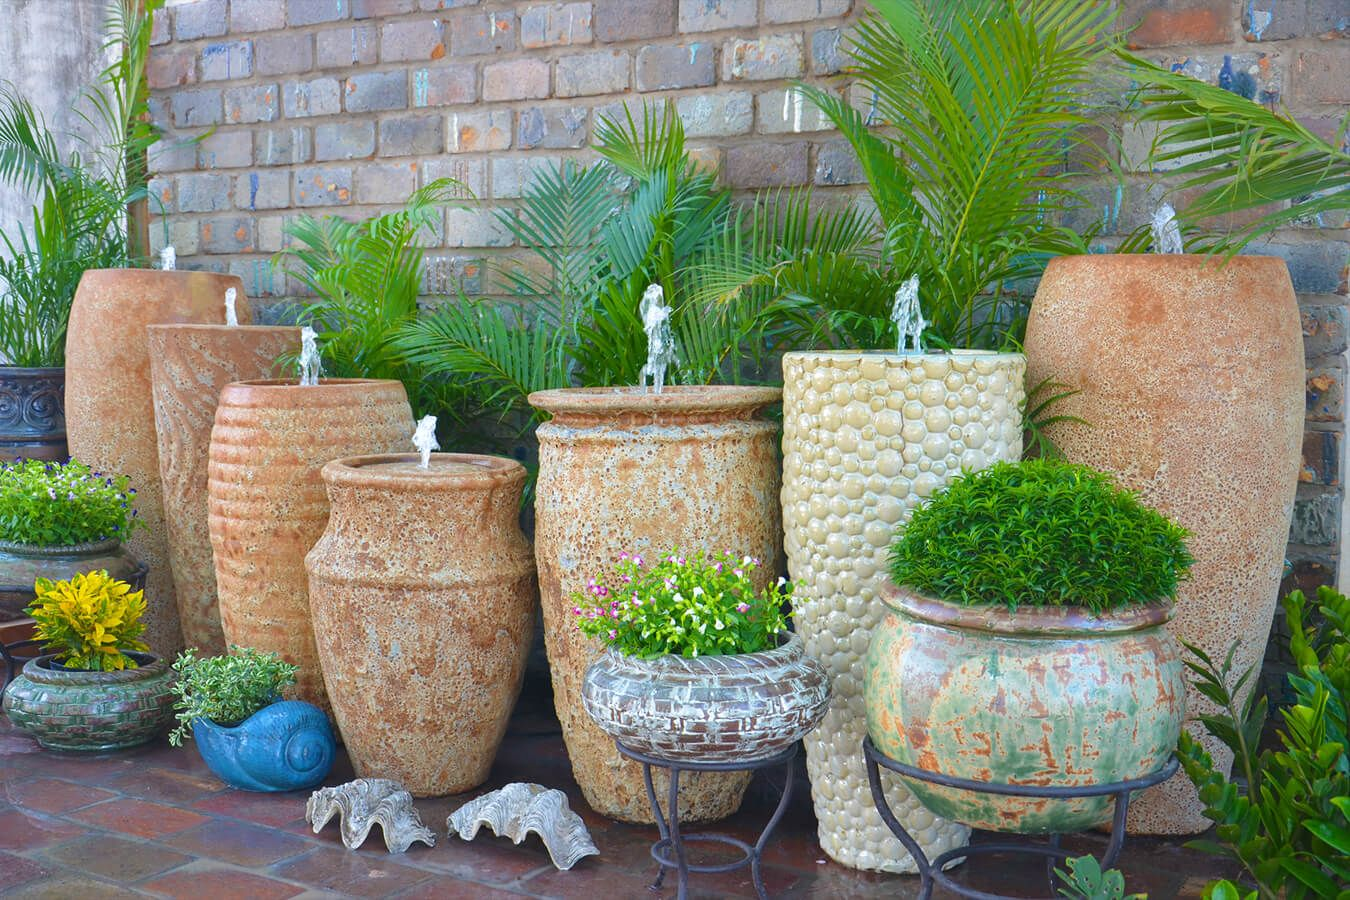 Wholesale vietnamese garden pottery large pots outdoor planters wholesale vietnamese garden pottery large pots outdoor planters vases and urns pot fountains reviewsmspy